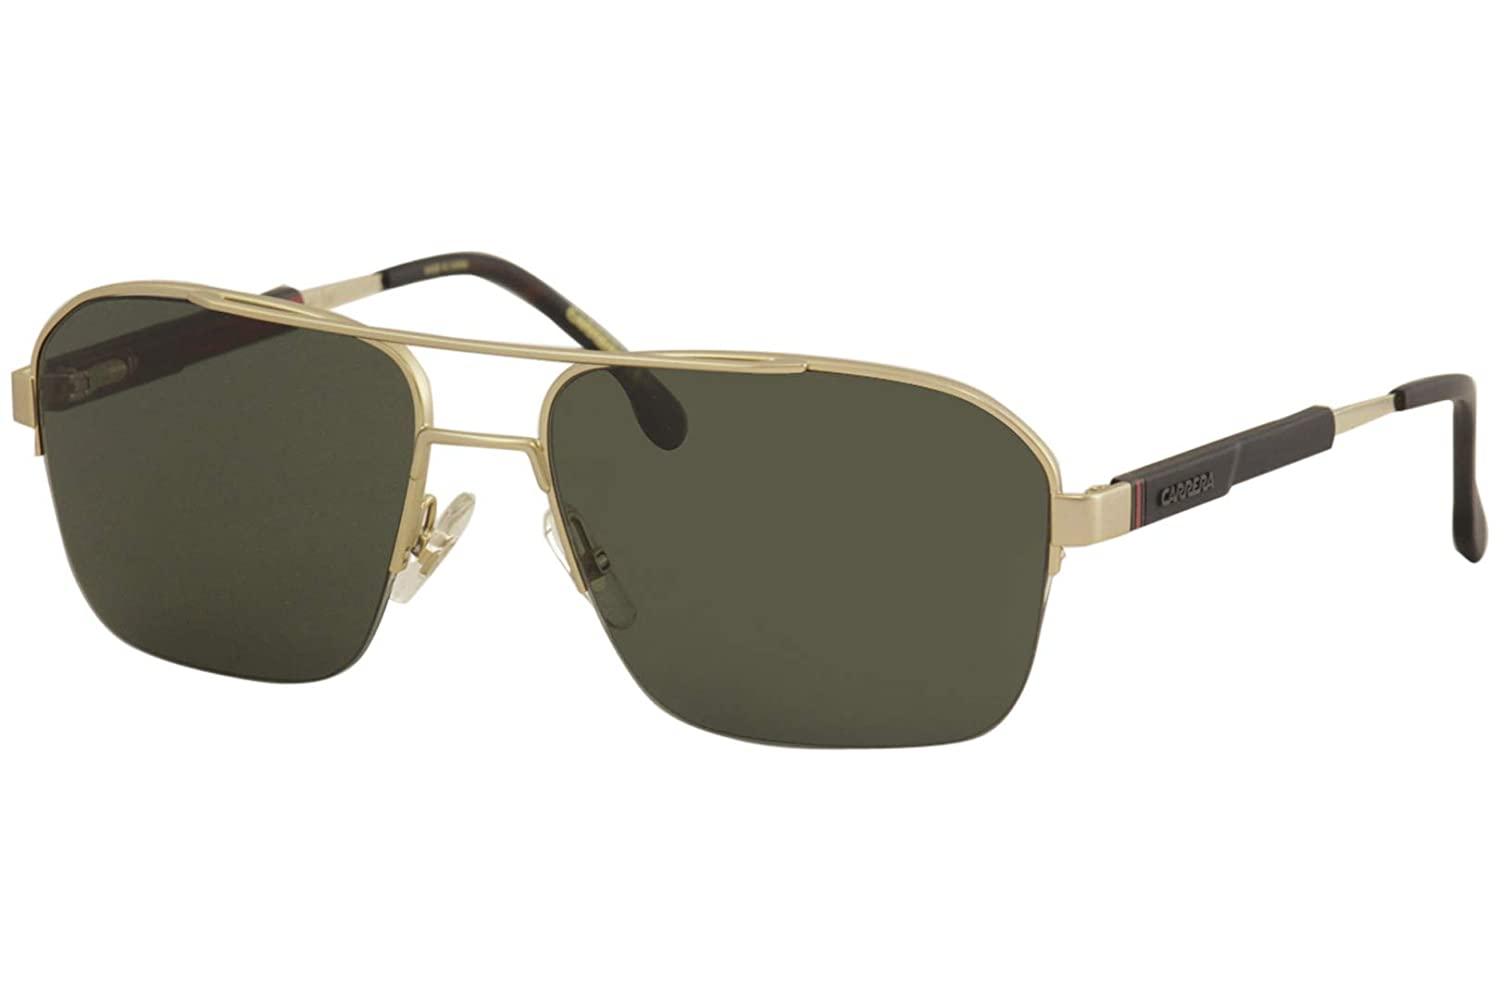 Amazon.com: Gafas de sol Carrera 8028/S 0AOZ Semi Matte Gold ...